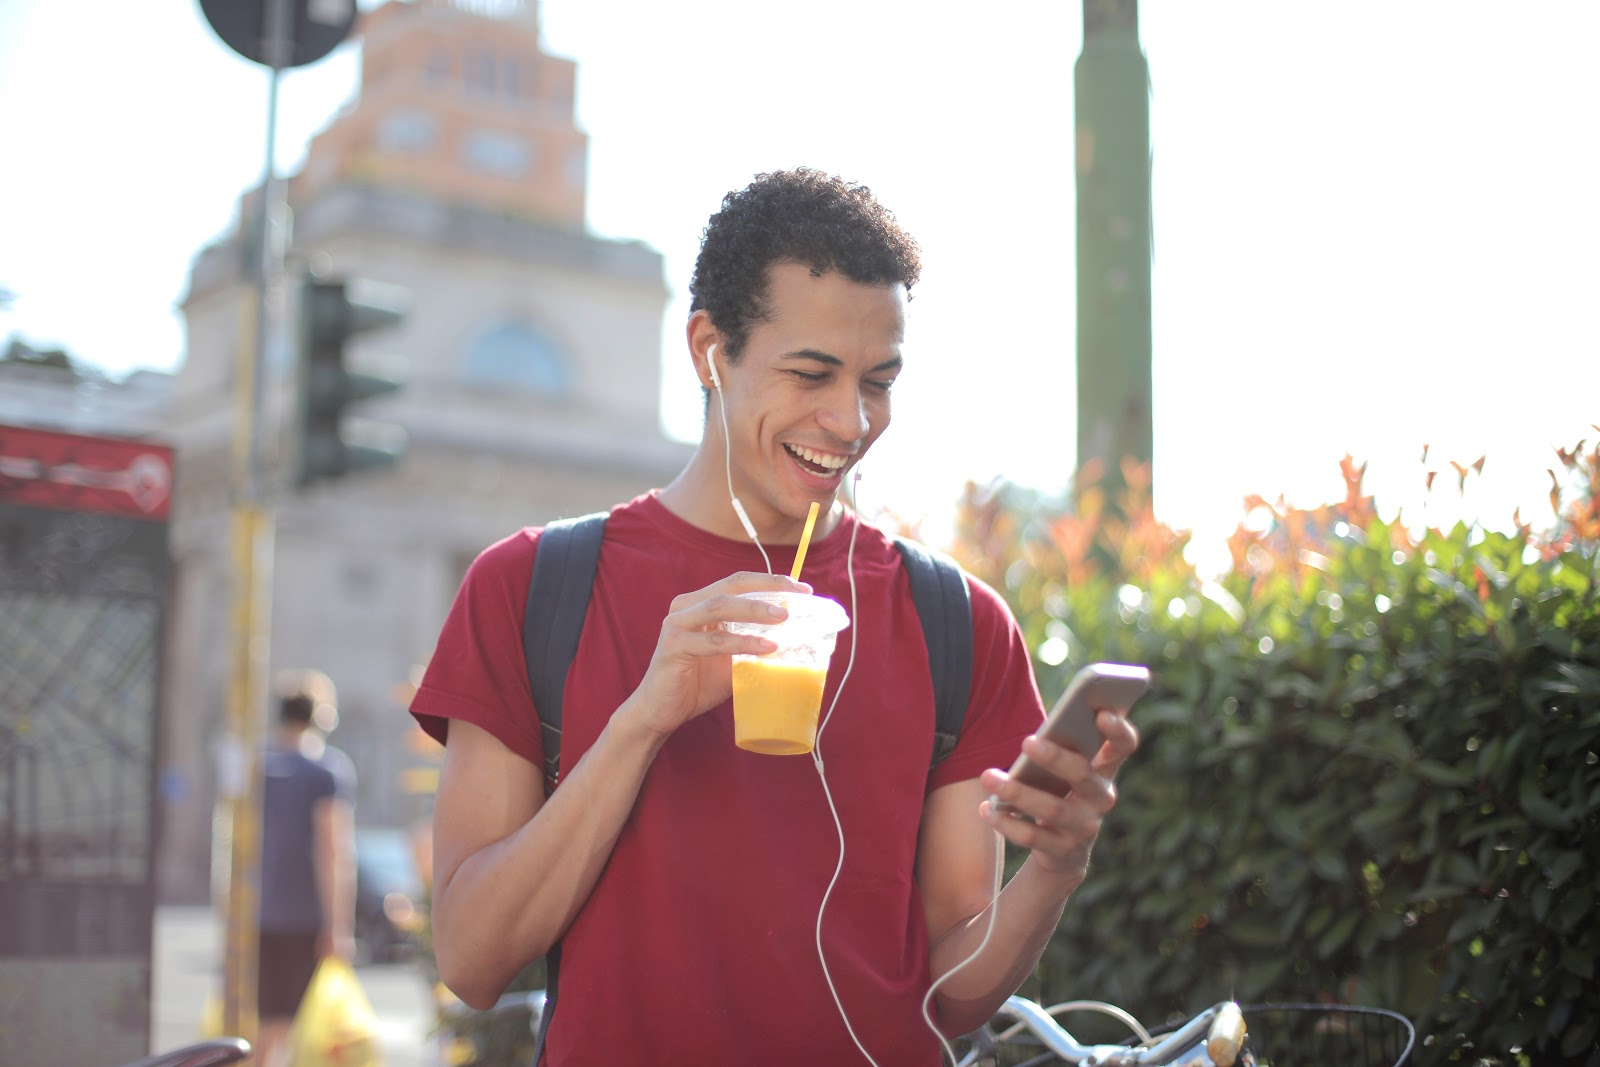 a young man drinking orange juice and listening to music while looking at his cell phone